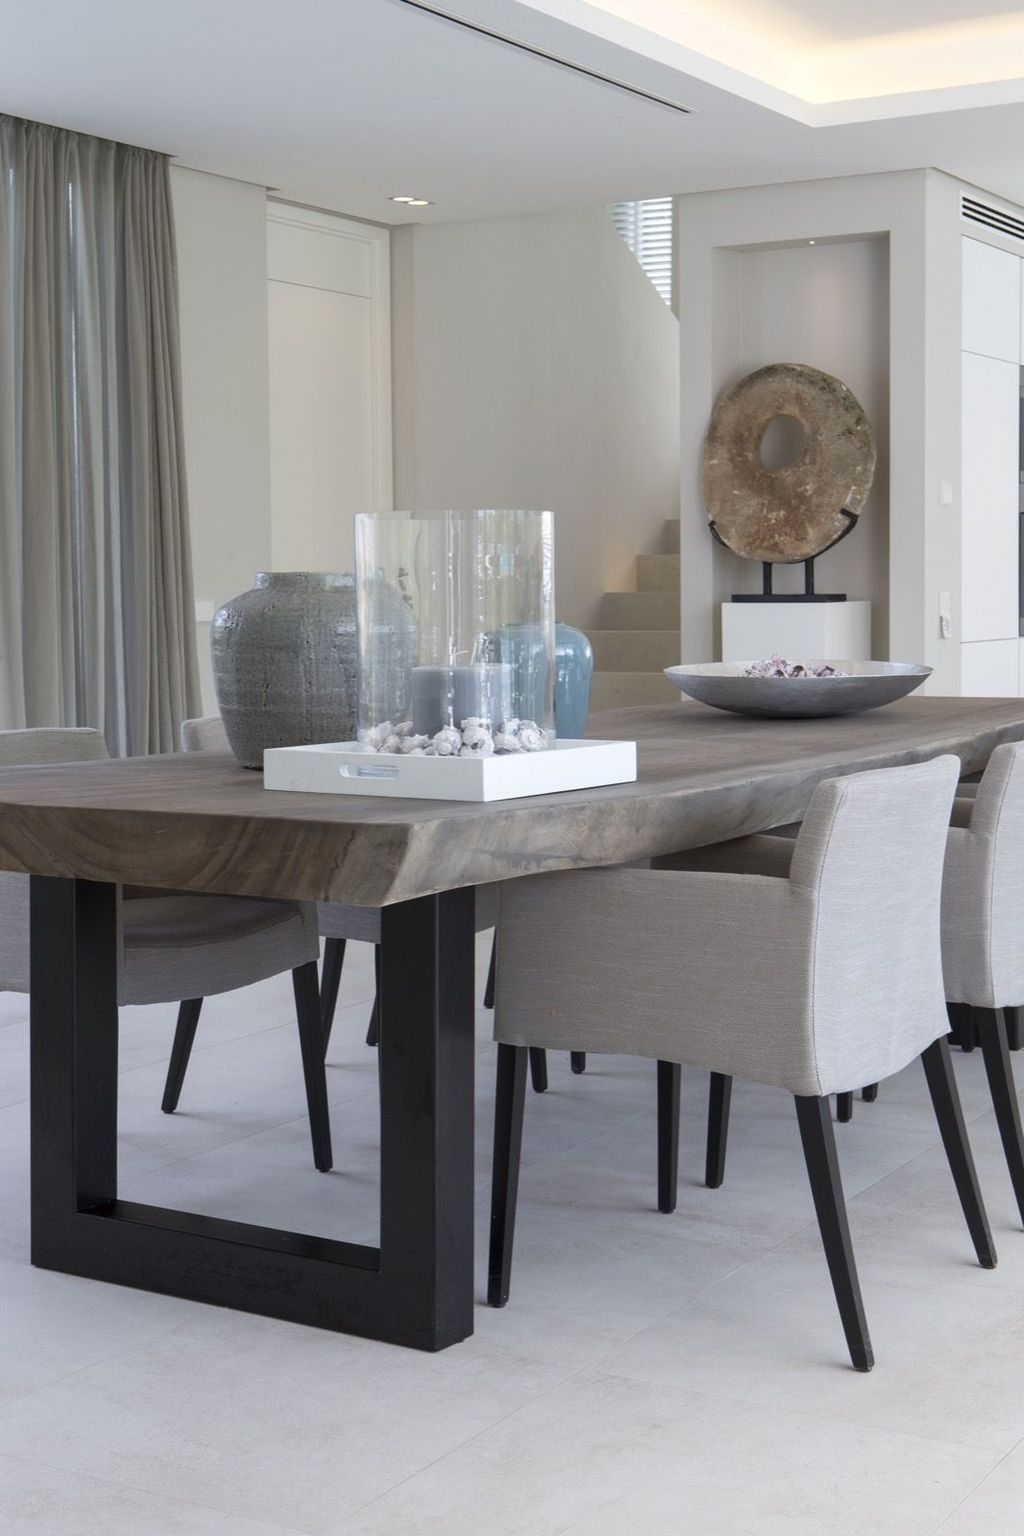 48 Elegant Modern Dining Table Design Ideas Homyhomee